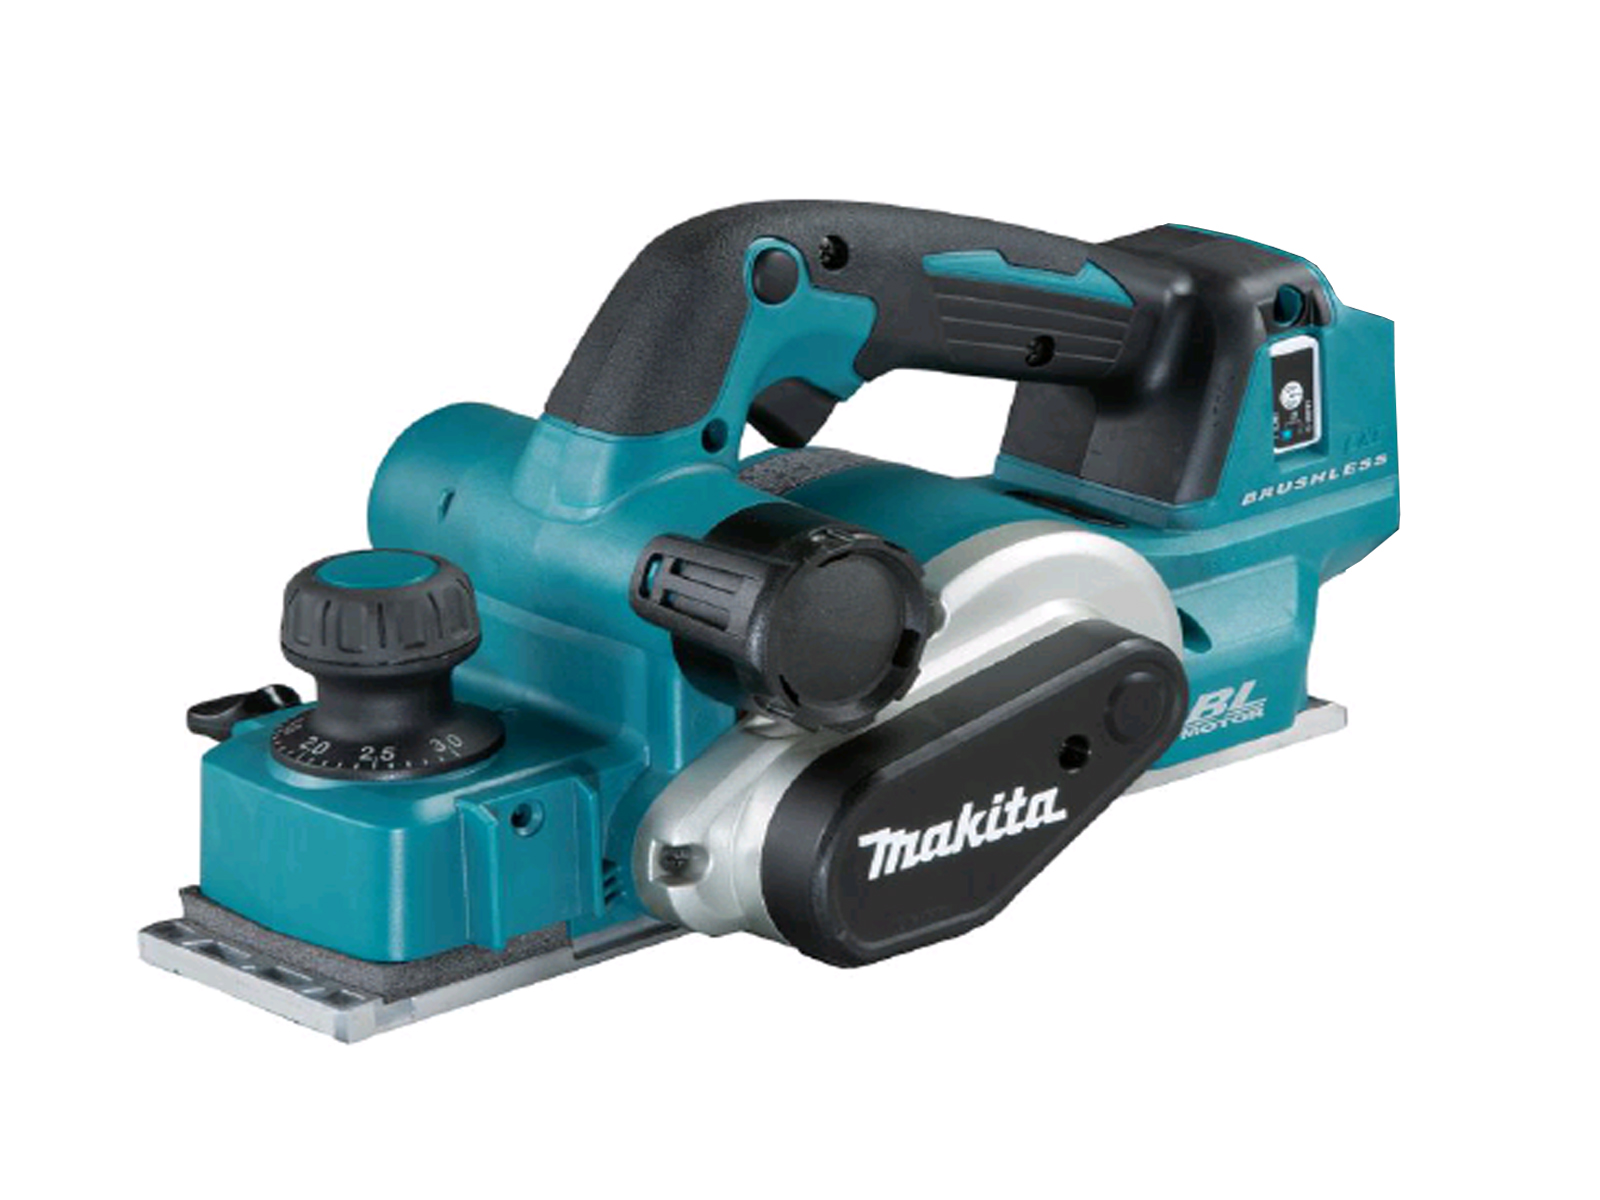 Makita 18V Brushless 82mm Planer + AWS Bluetooth - DKP181ZU - Body Only